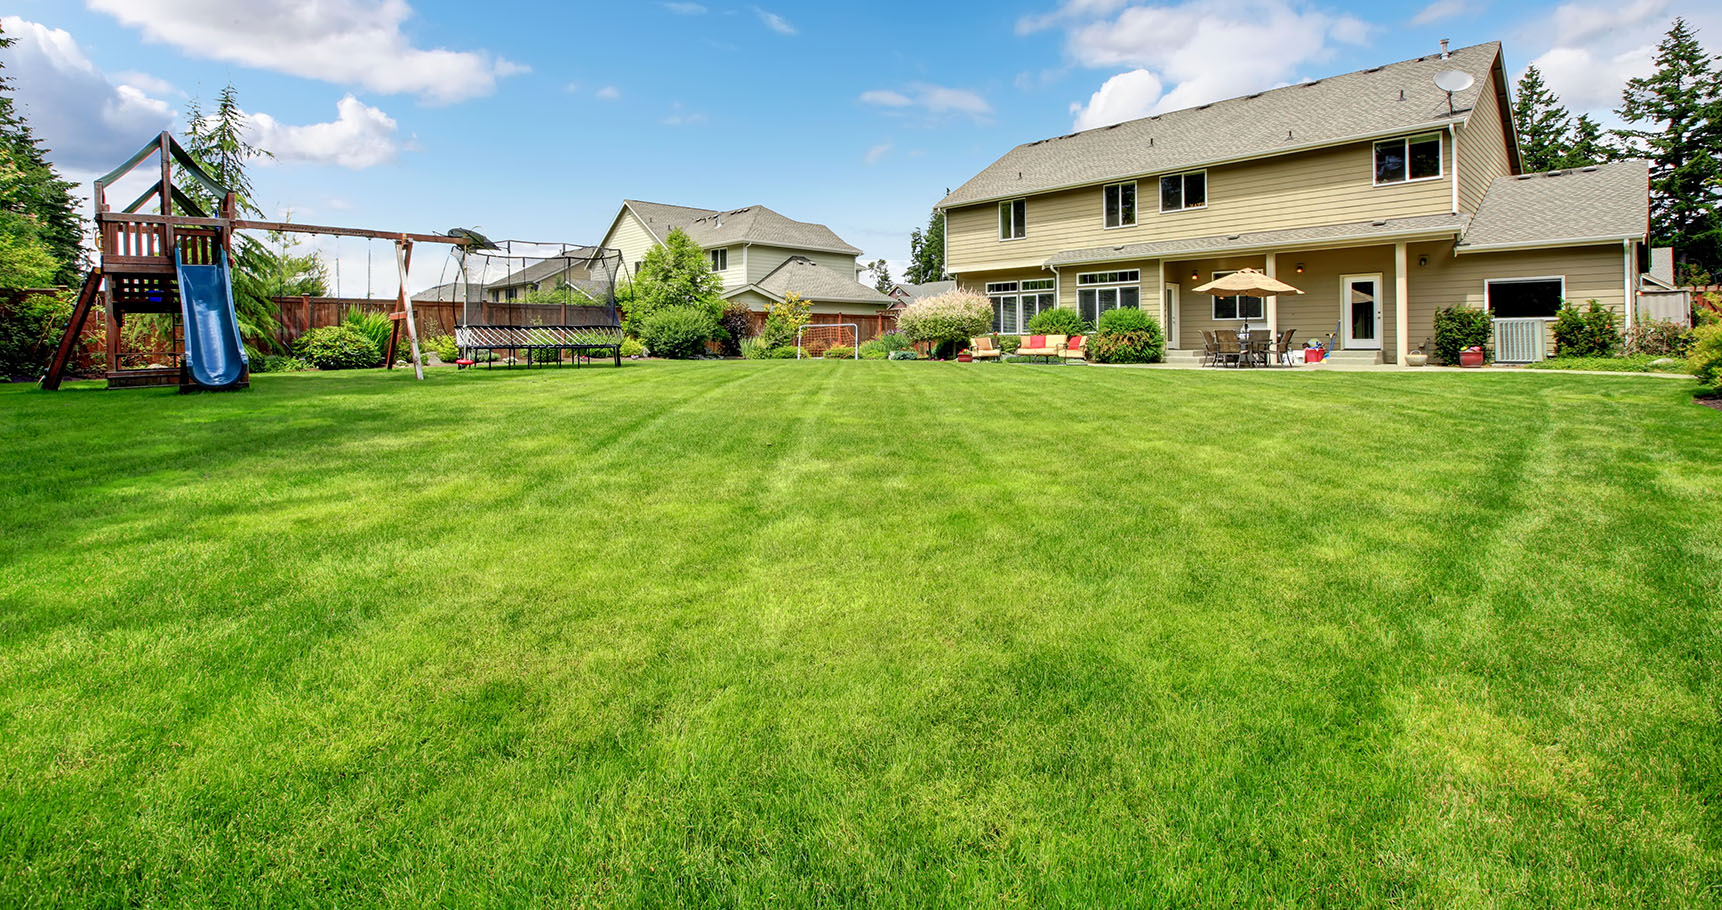 Large beautiful fenced backyard with play ground and nice house